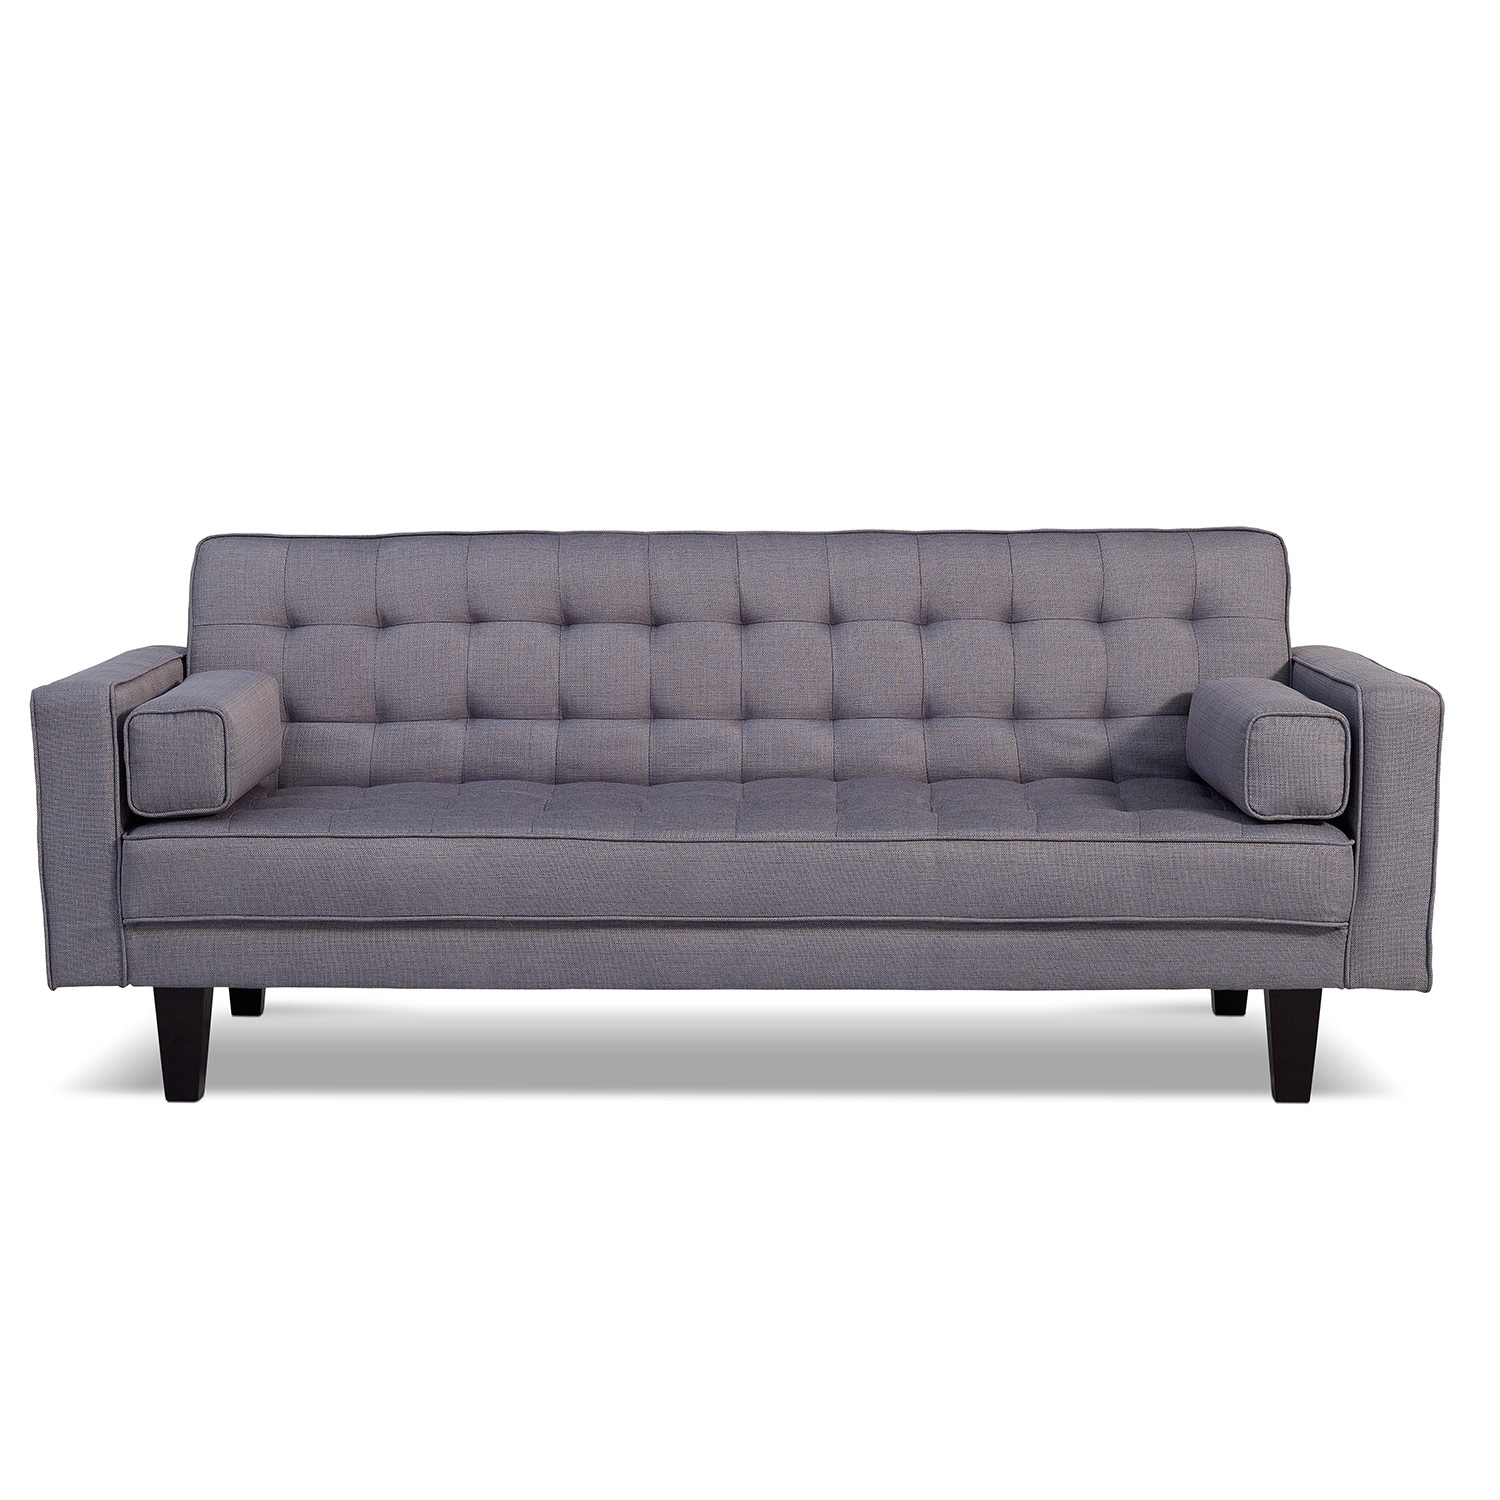 Britton futon sofa bed for Sofa bed futon